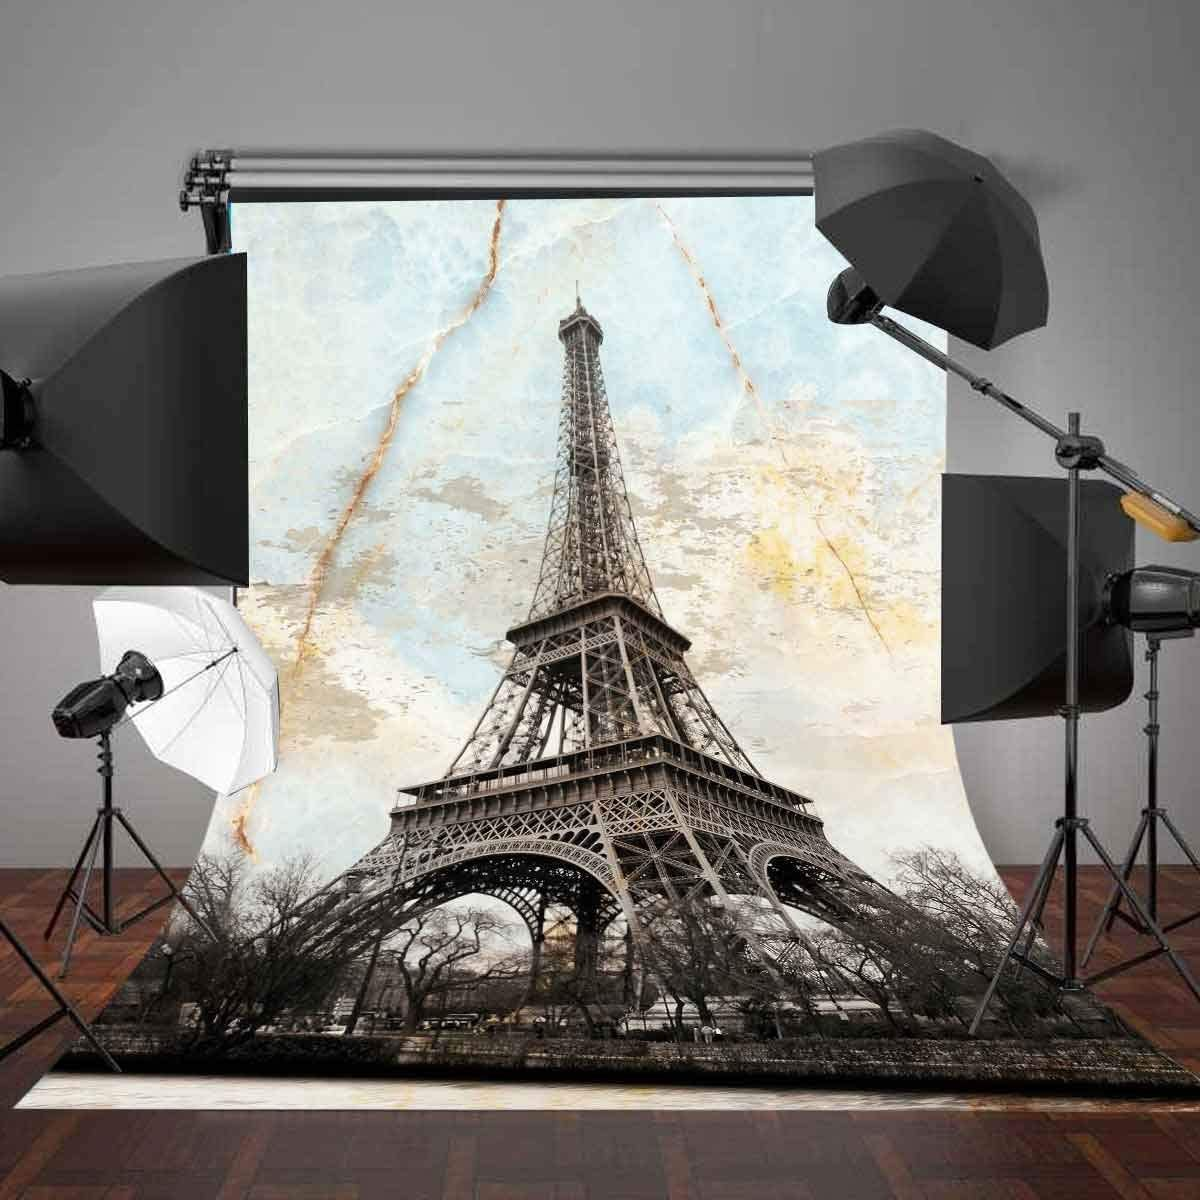 GoEoo 5X7ft Grey Style Backdrop Paris Eiffel Tower Photography Background Vintage Photo Video Shooting Props LYGE568